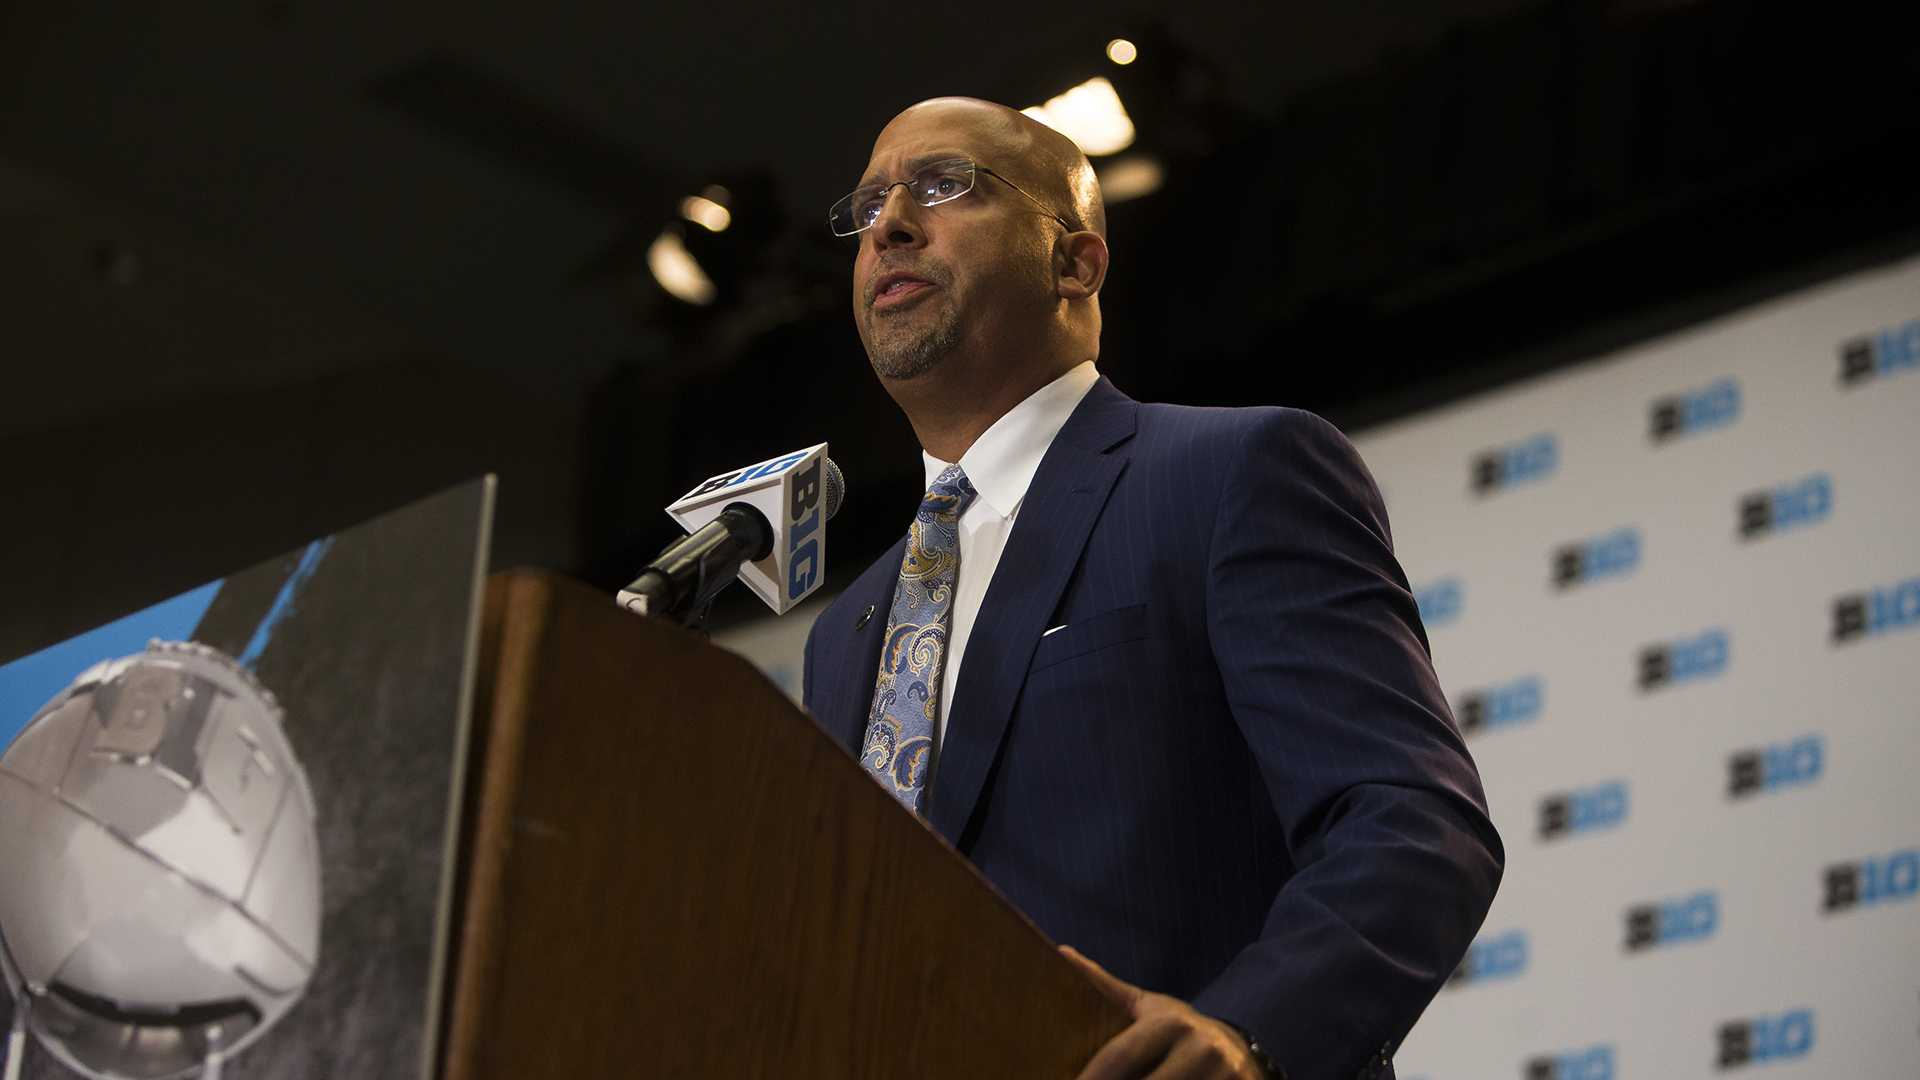 James Franklin, head coach of Penn State, speaks during Big Ten Football Media Days at McCormick Place Conference Center in Chicago on Tuesday, July 25, 2017. (Ben Smith/The Daily Iowan)